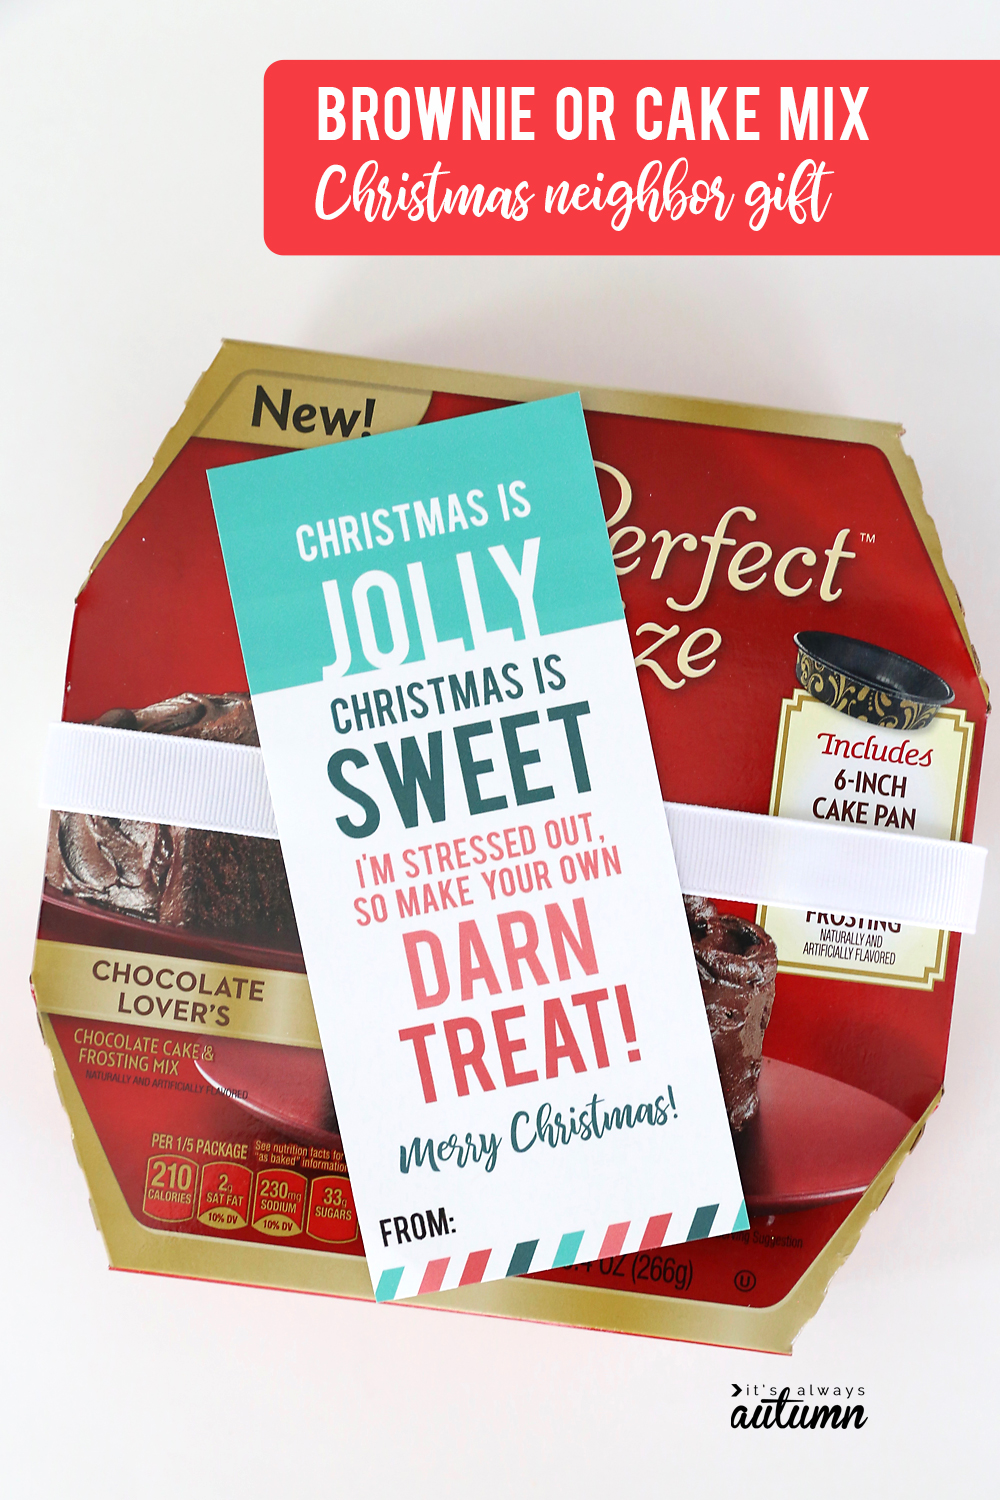 17 easy Christmas neighbor gift ideas with printable tags! Brownie mix neighbor gift idea.